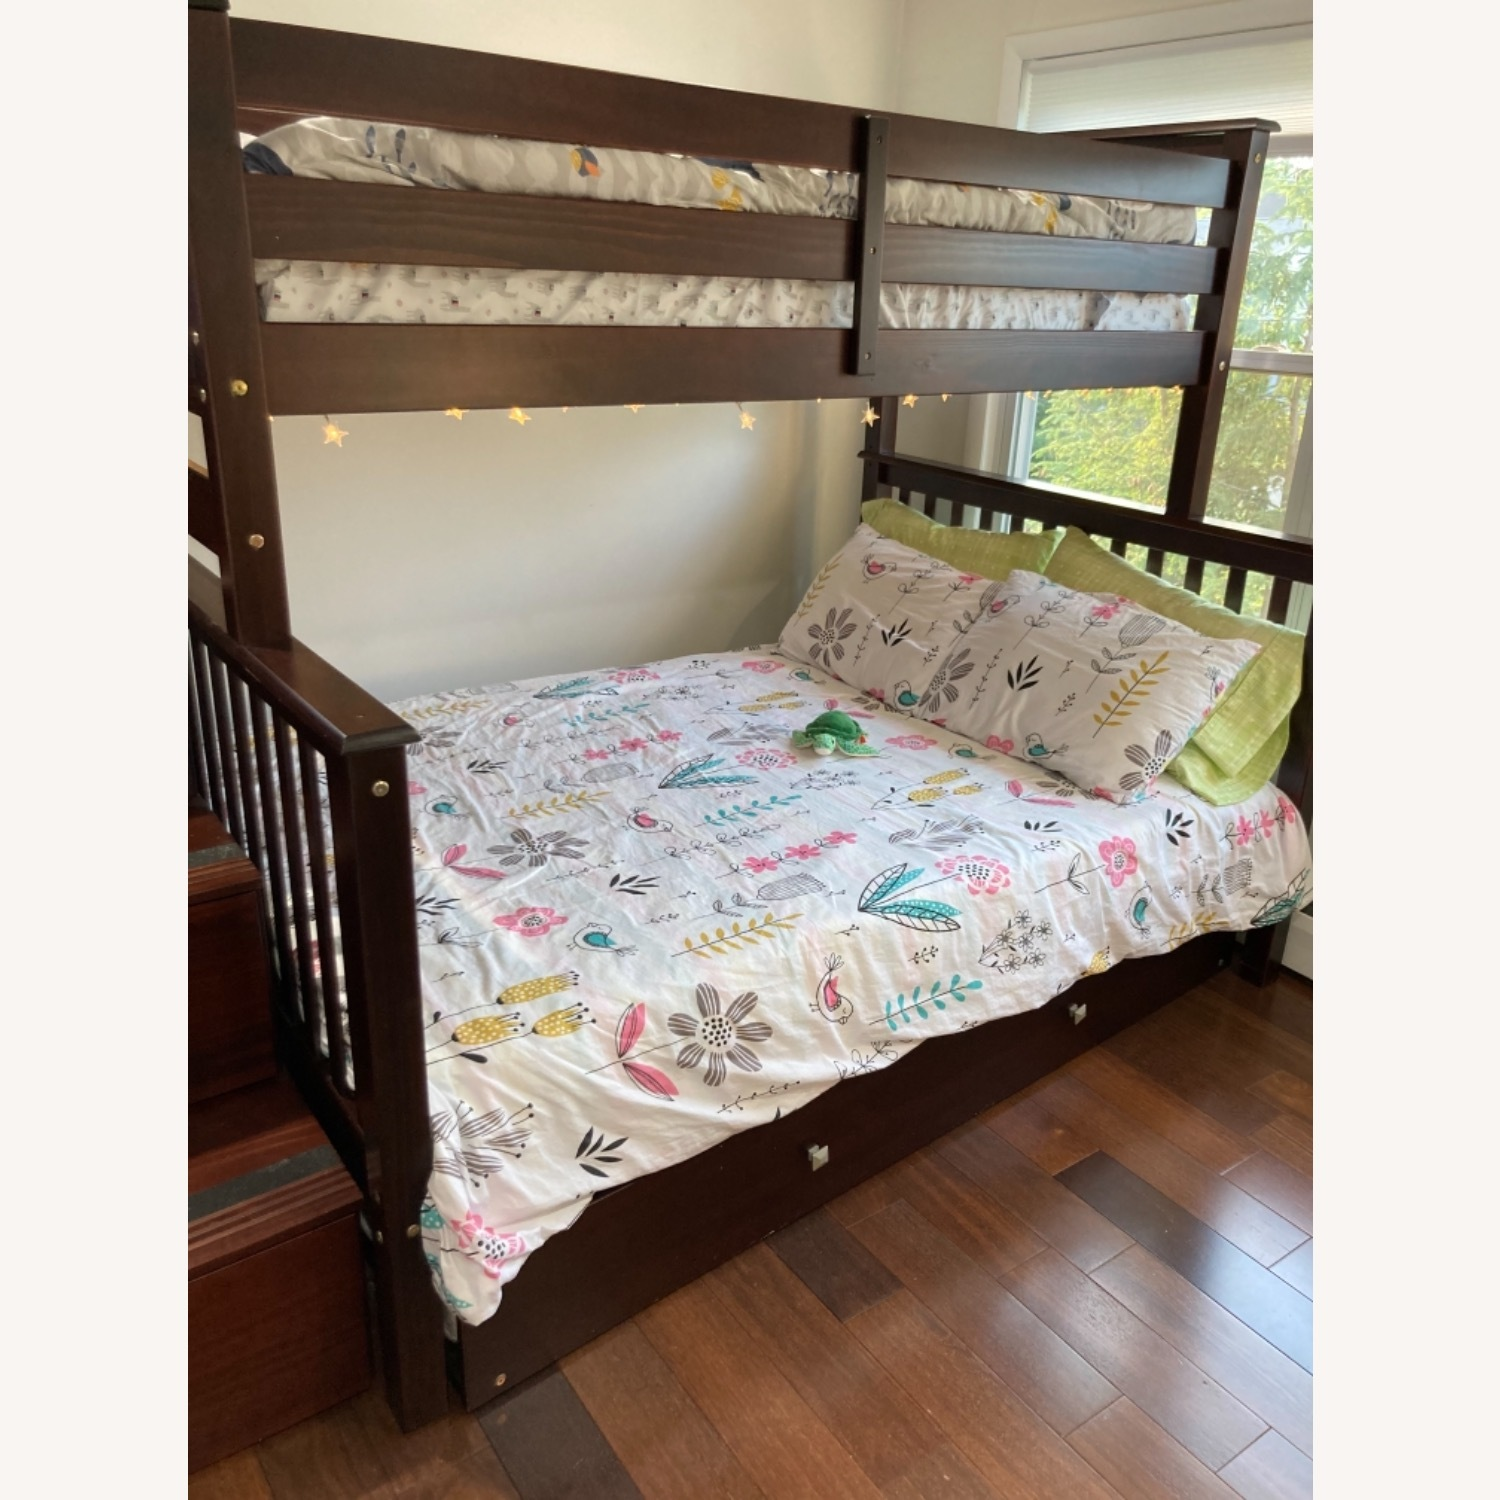 Wayfair Solid Wood Bunk Bed with Trundle, Storage - image-2